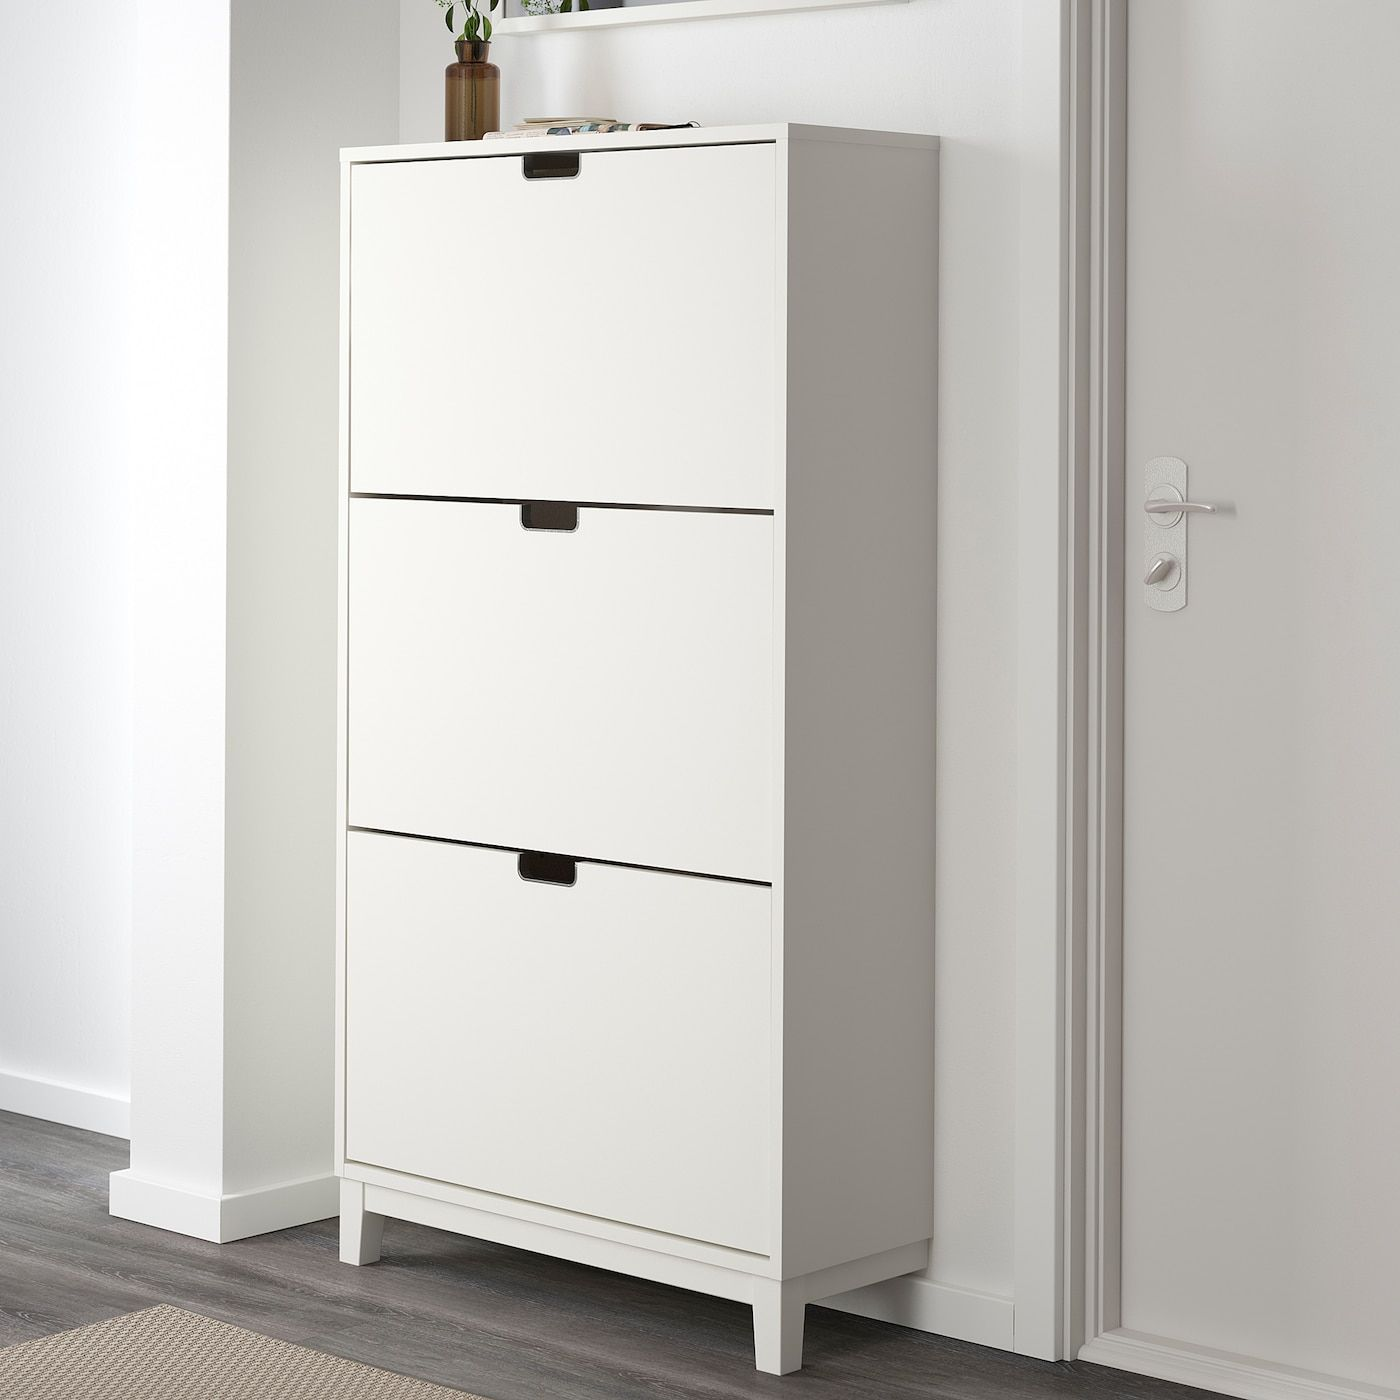 Stall Shoe Cabinet With 3 Compartments White 31 1 8x58 1 4 In 2020 Shoe Cabinet Cabinet Ikea